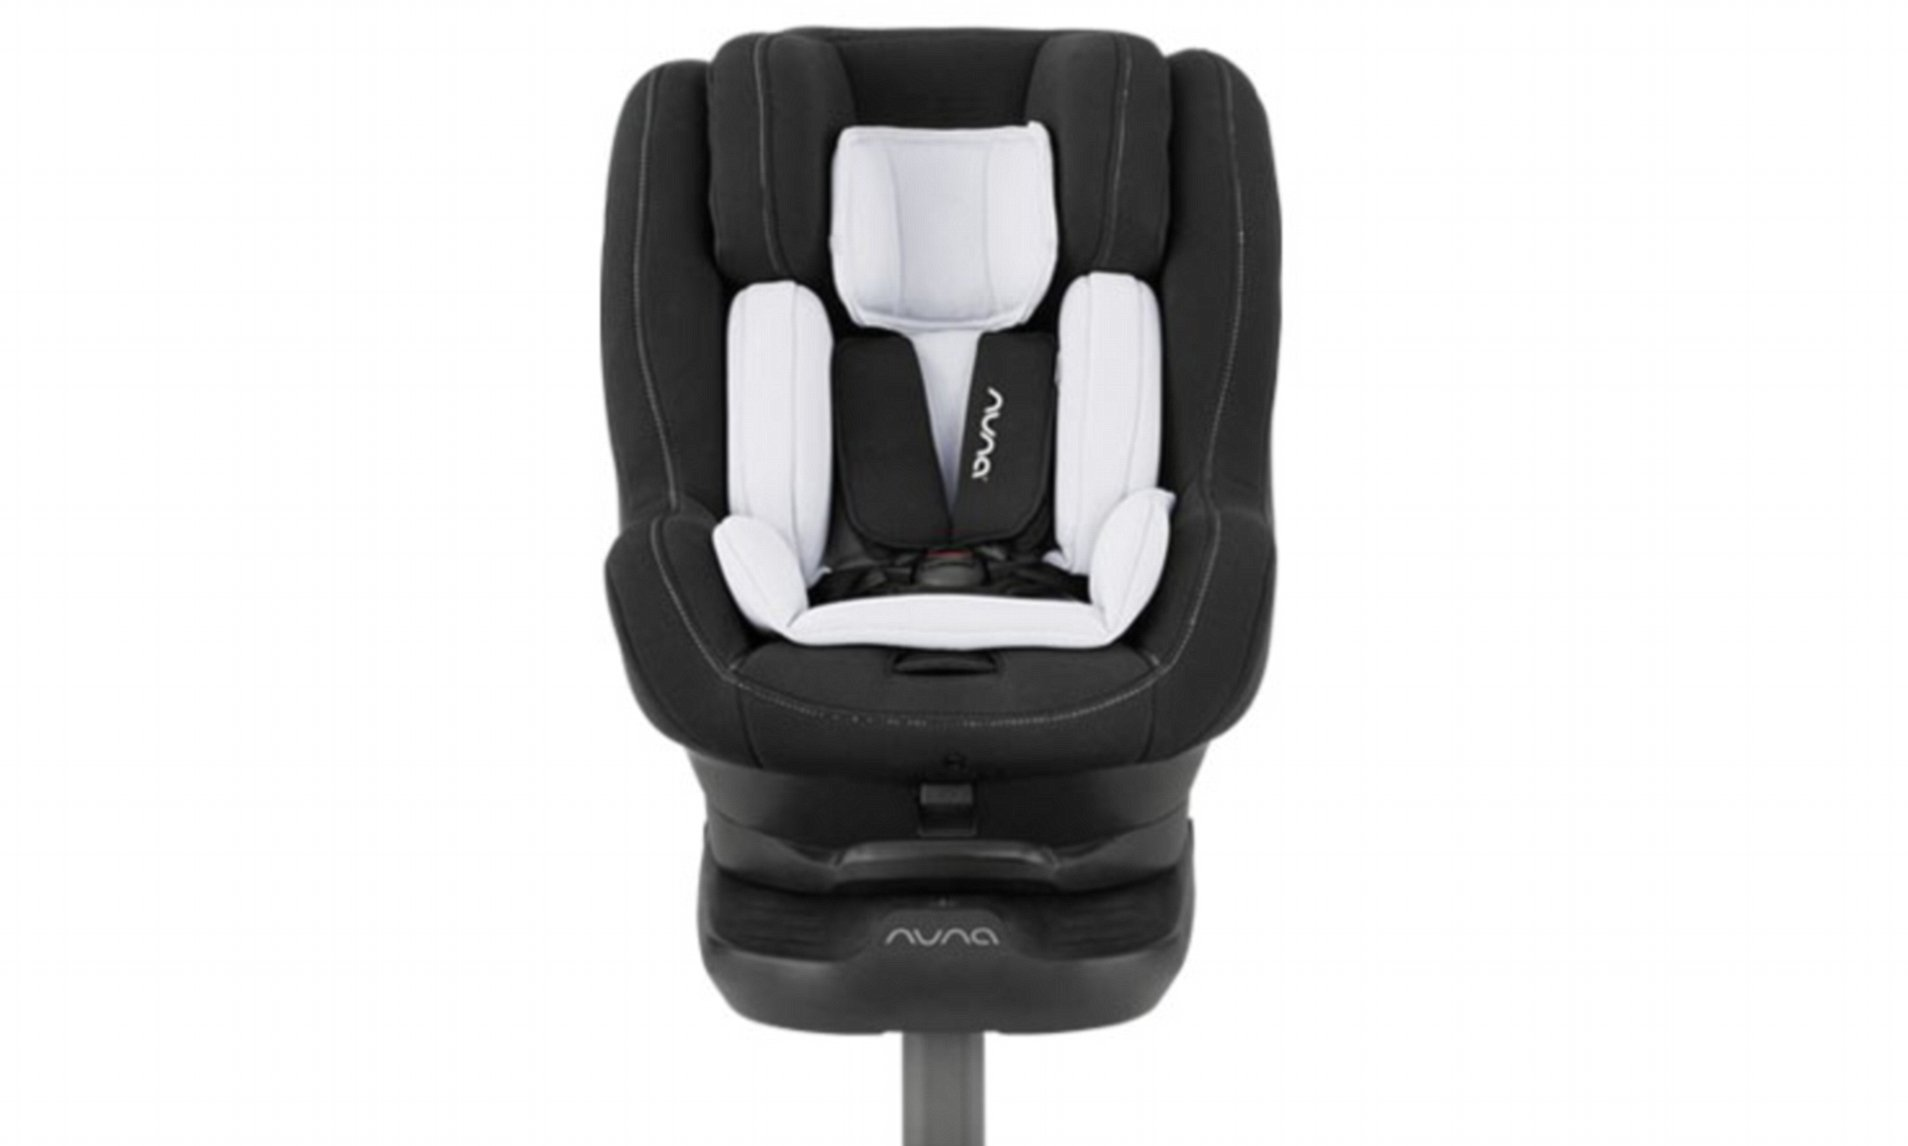 Maxi Cosi Car Seat On Mothercare Xpedior Which Brands A 395 Child S Car Seat A Don T Buy After It